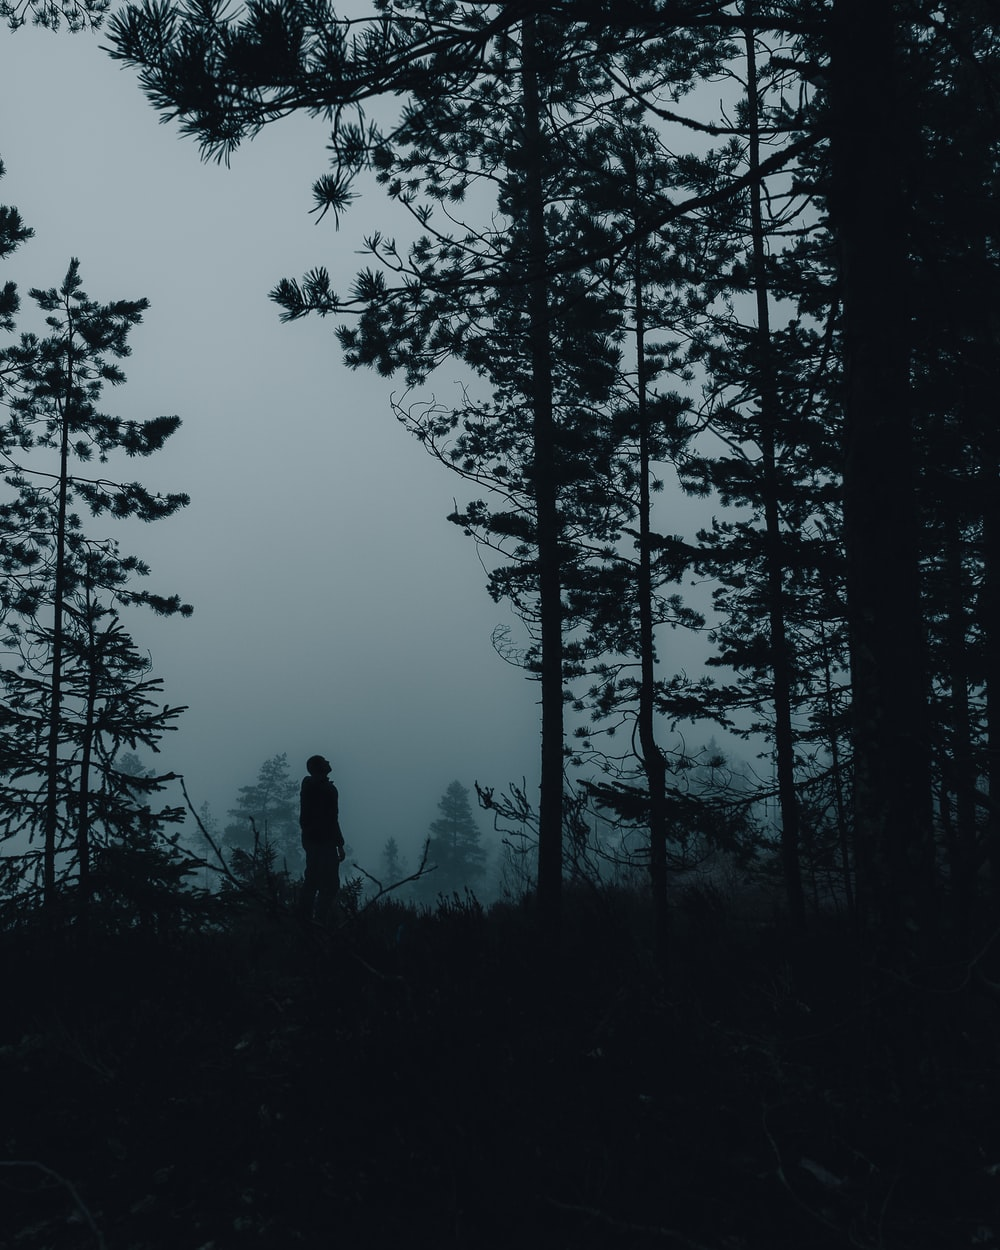 silhouette of person standing near trees during daytime